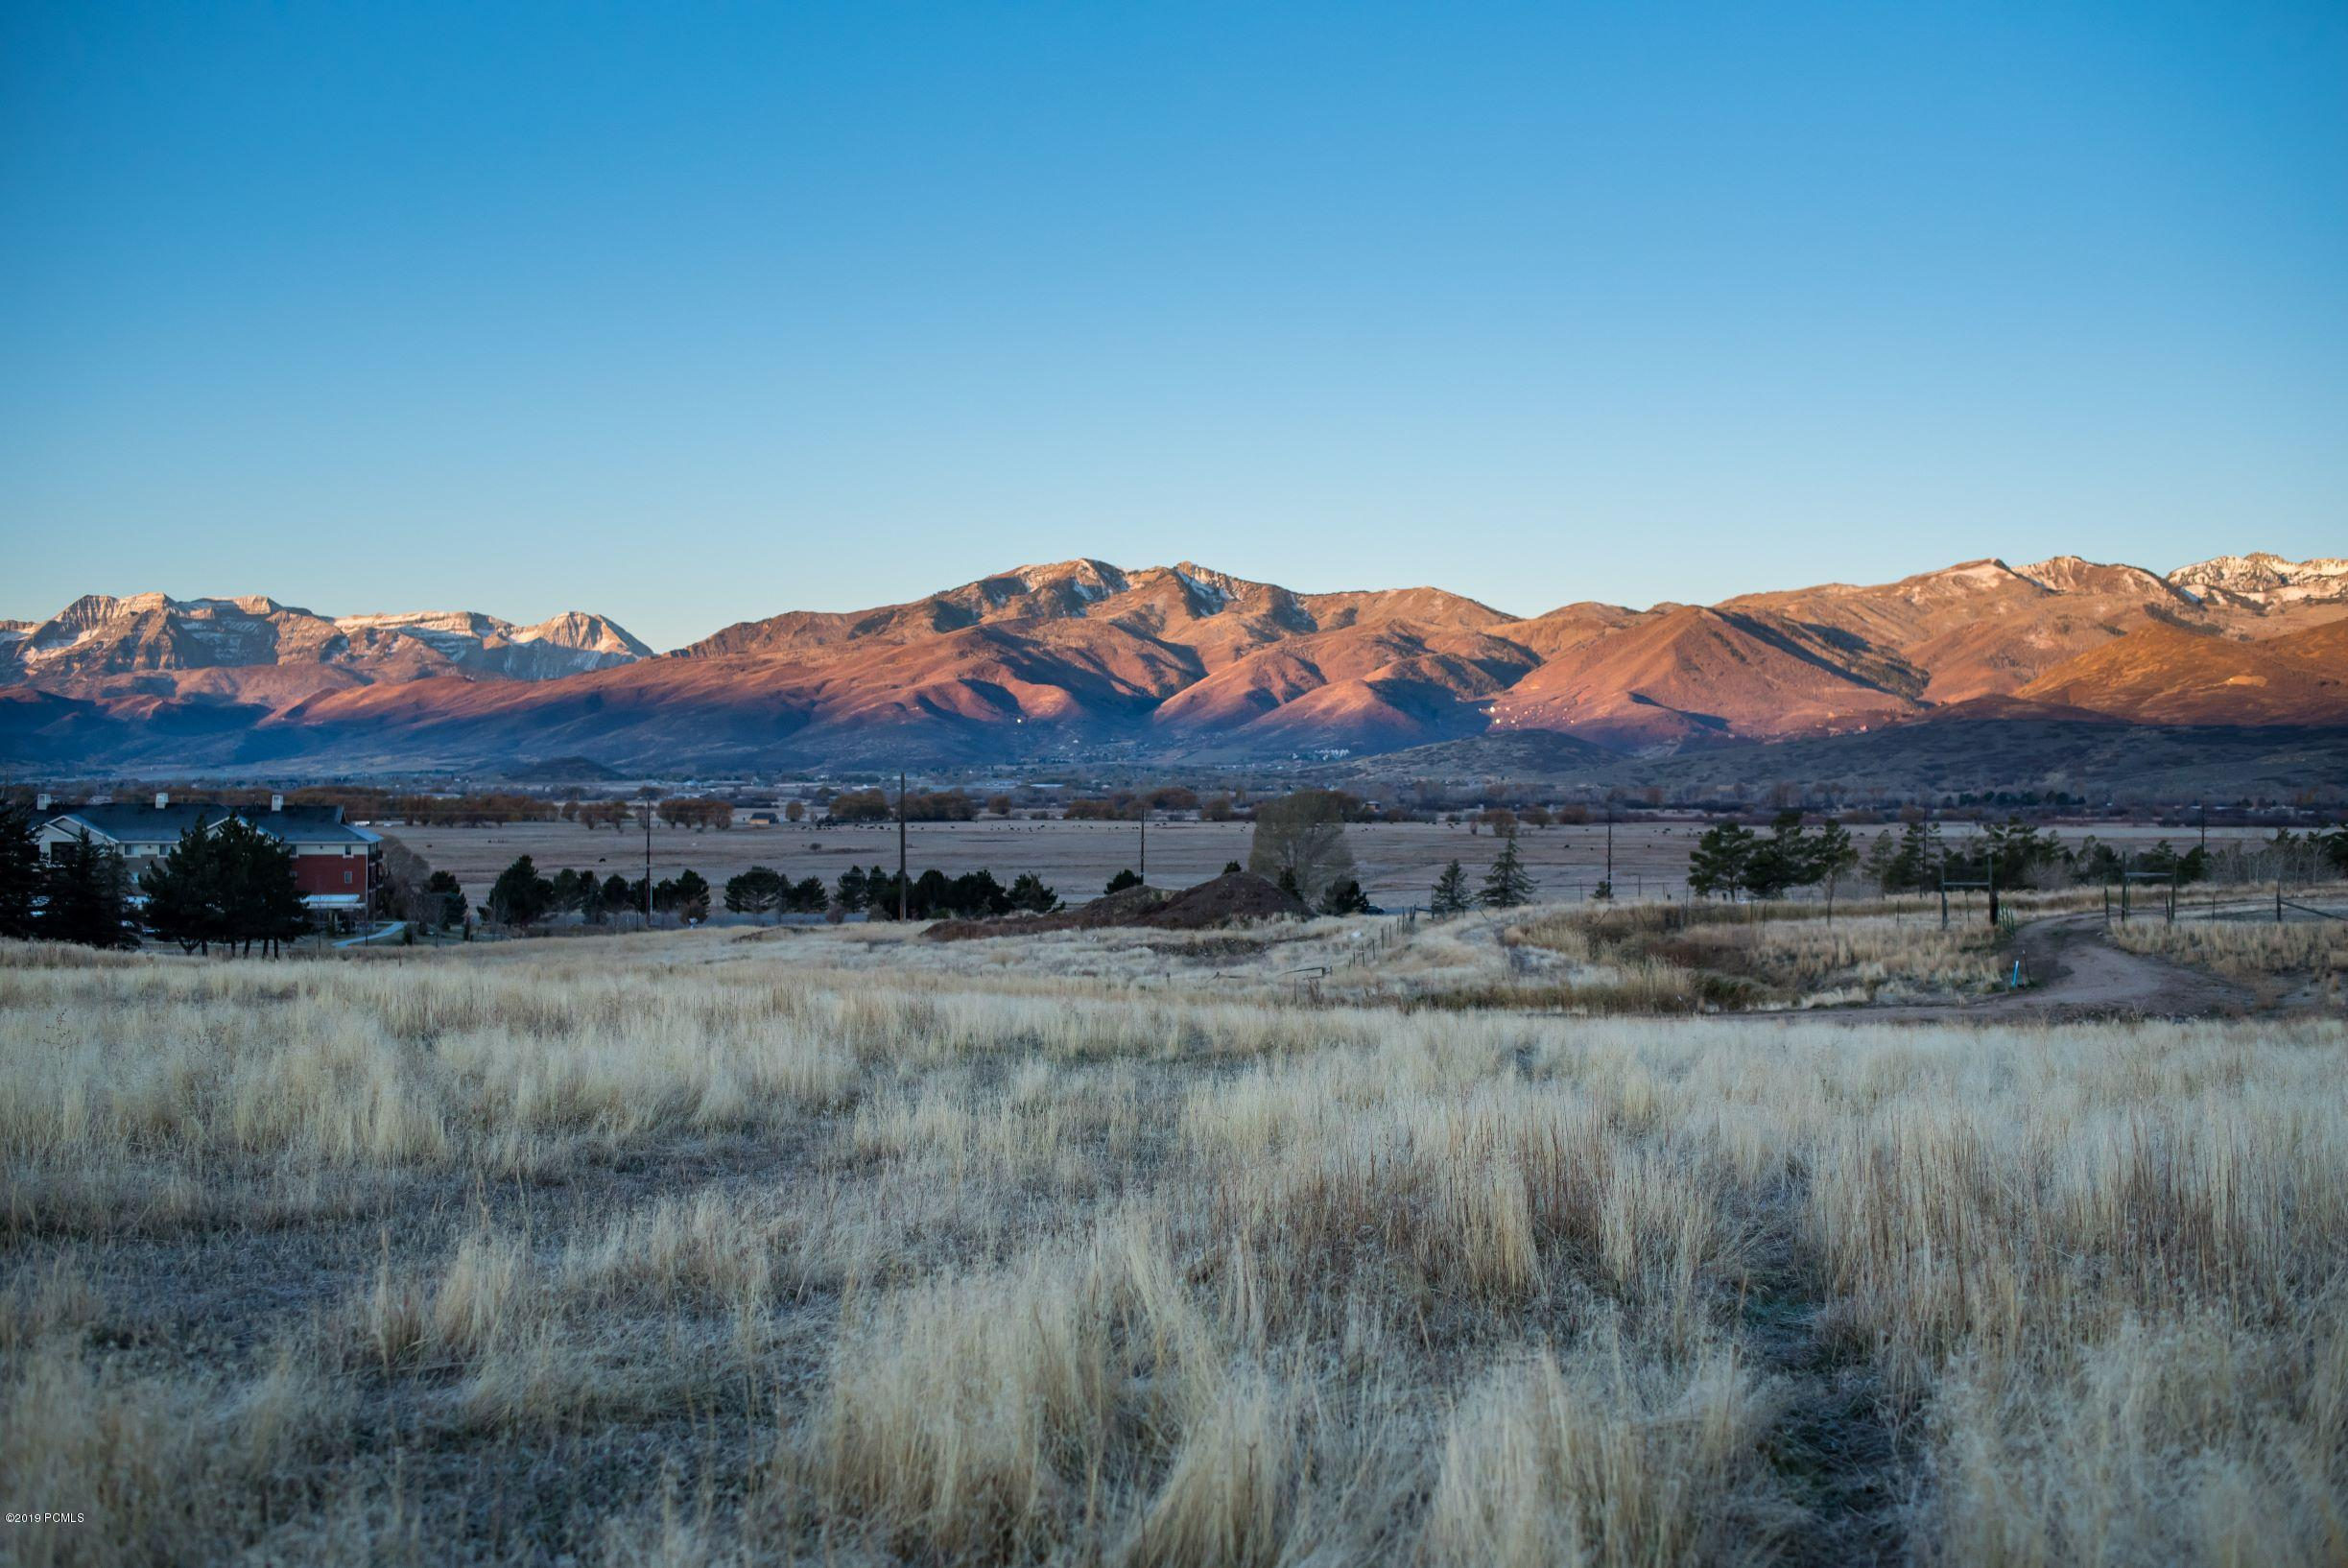 1018 Tatton Park Drive, Heber City, Utah 84032, ,Land,For Sale,Tatton Park,20190109112430415765000000